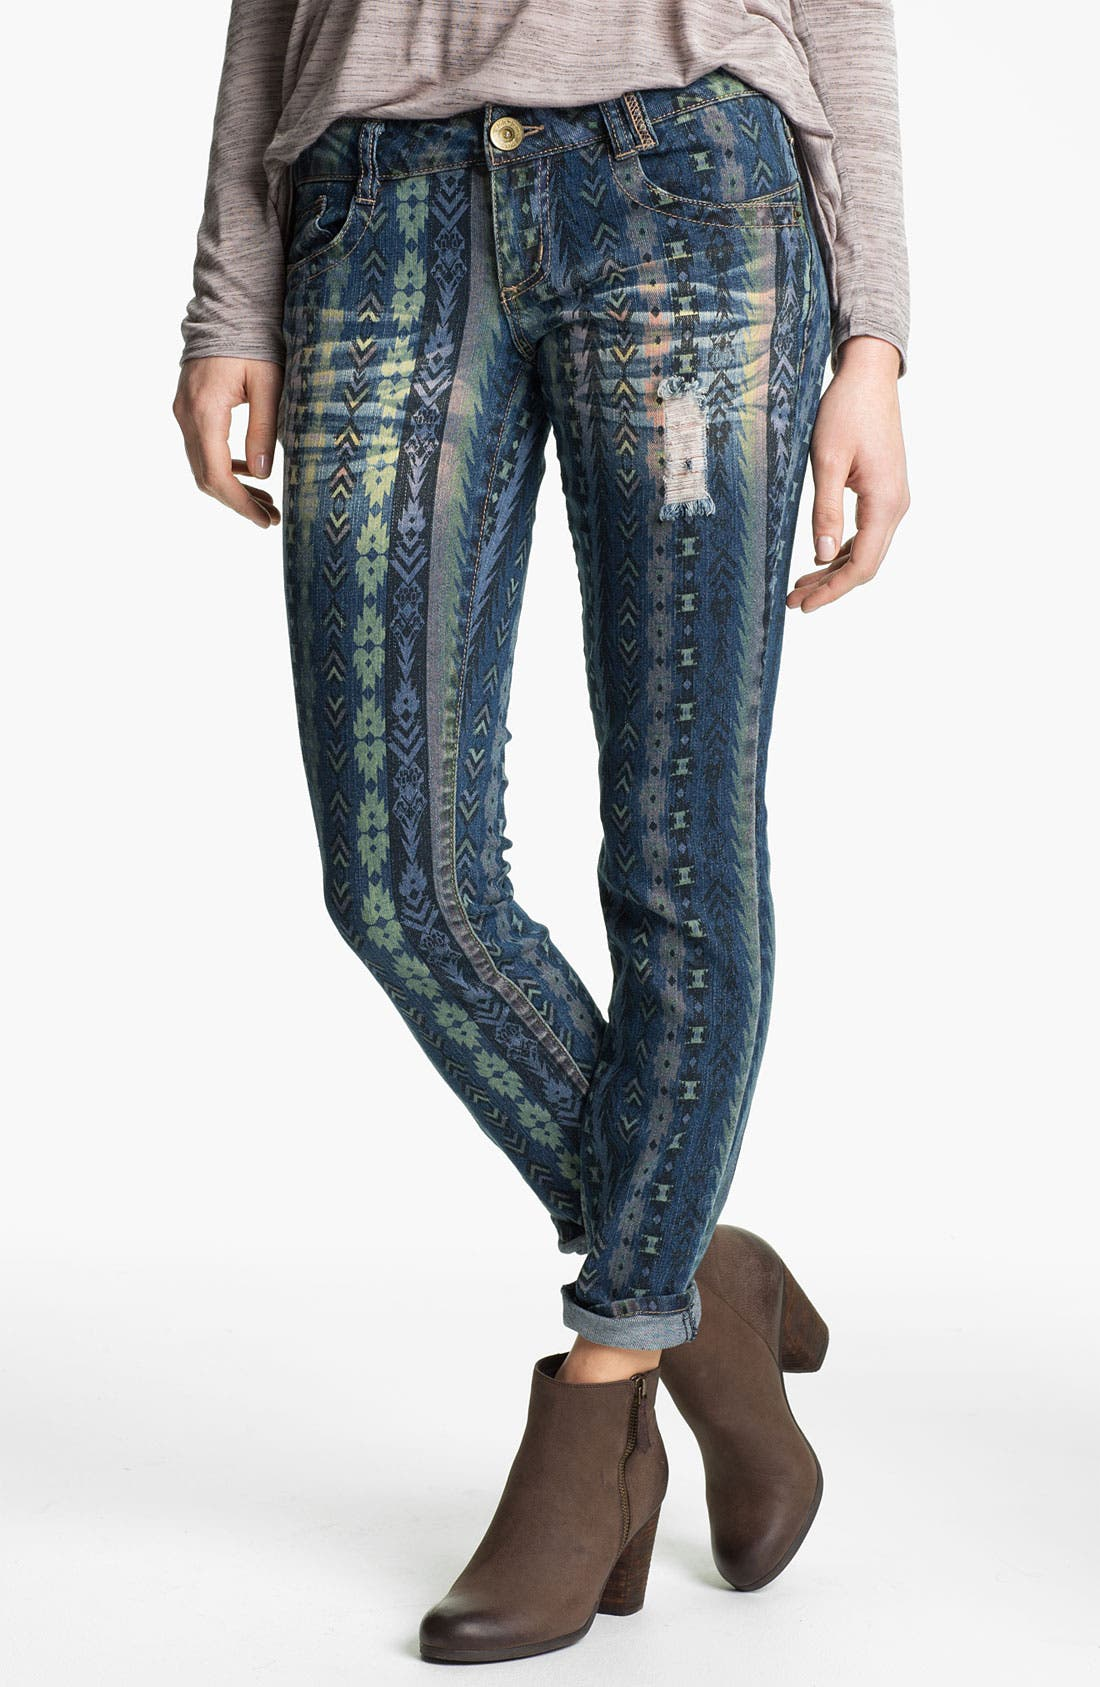 Alternate Image 1 Selected - Jolt Destroyed Print Denim Skinny Jeans (Juniors)